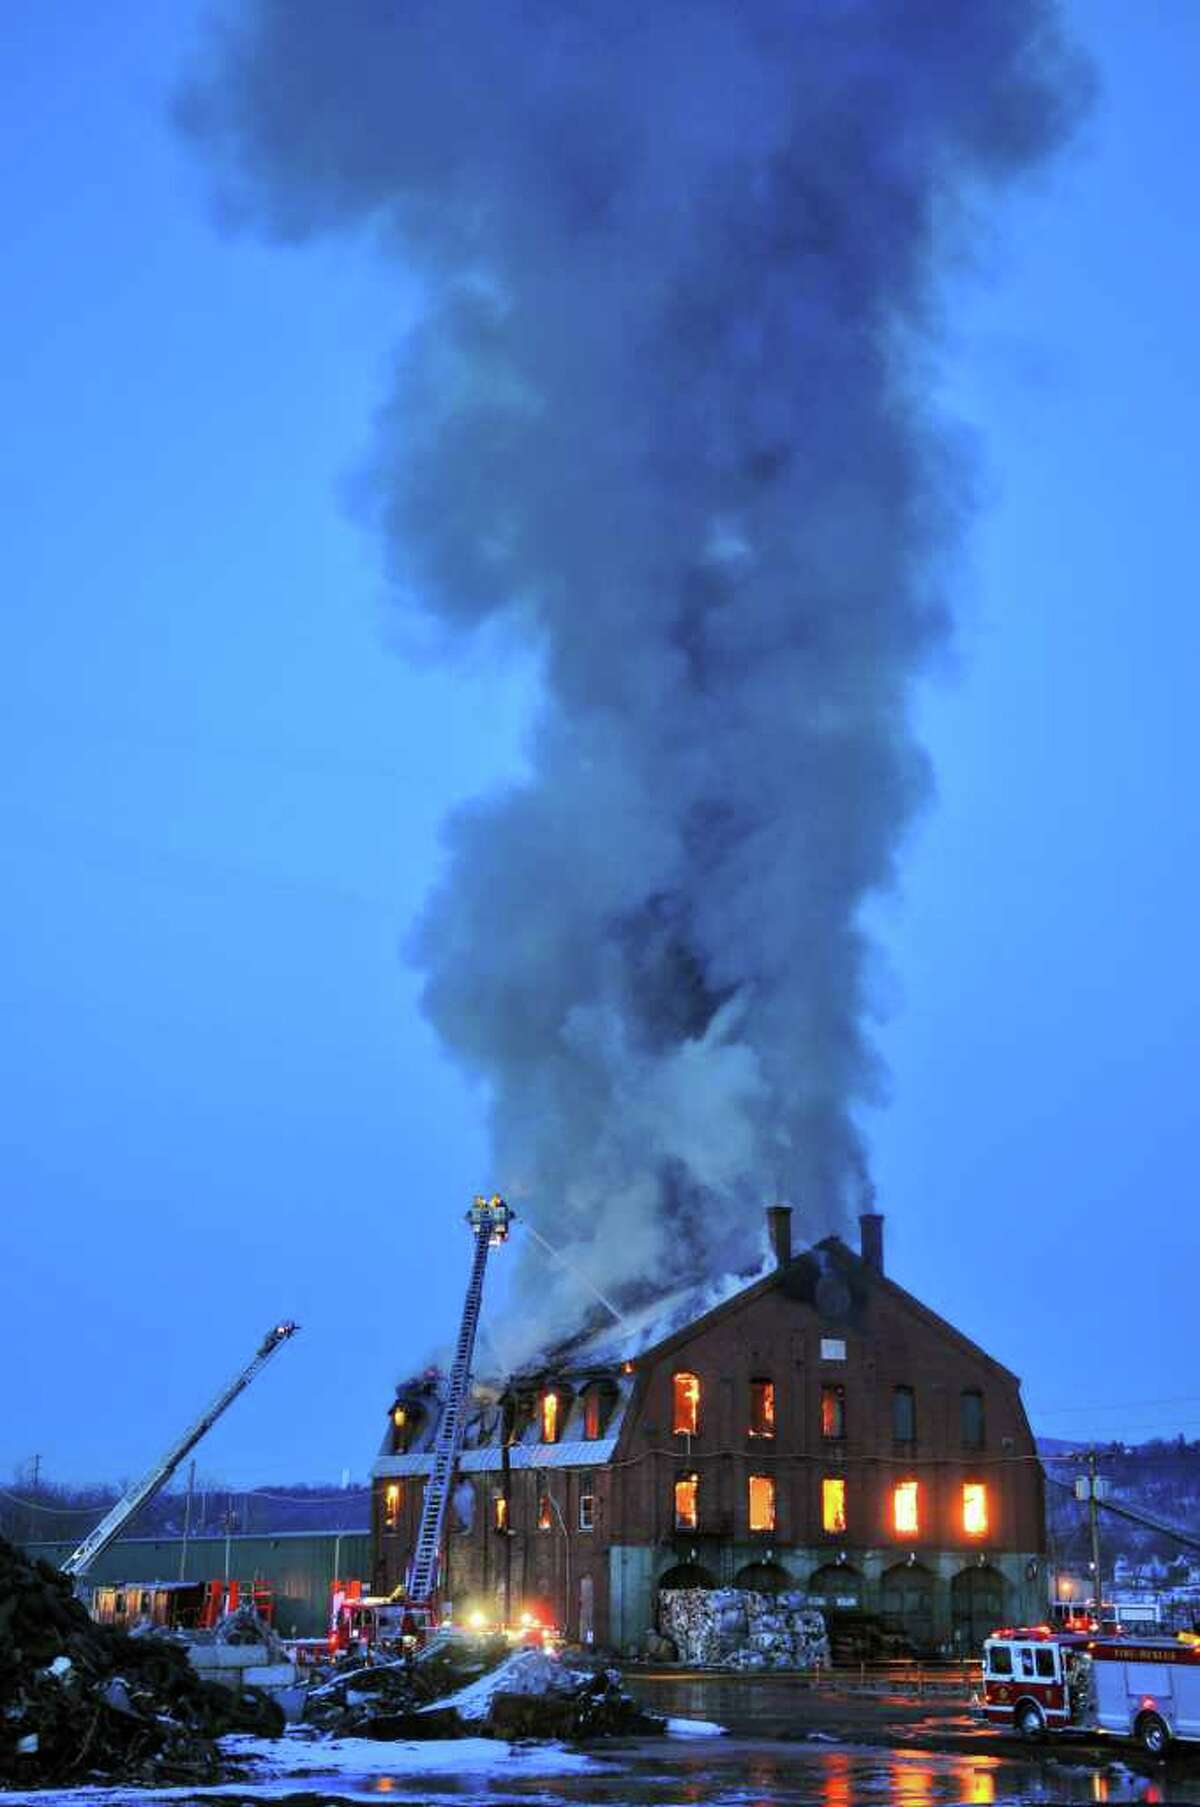 Firefighters douse flames on a building at R. Kelly Freedman & Son Inc. scrap yard on Thursday evening March 3, 2011, in Green Island, NY. The plume of smoke could be seen from miles away .( Philip Kamrass / Times Union )